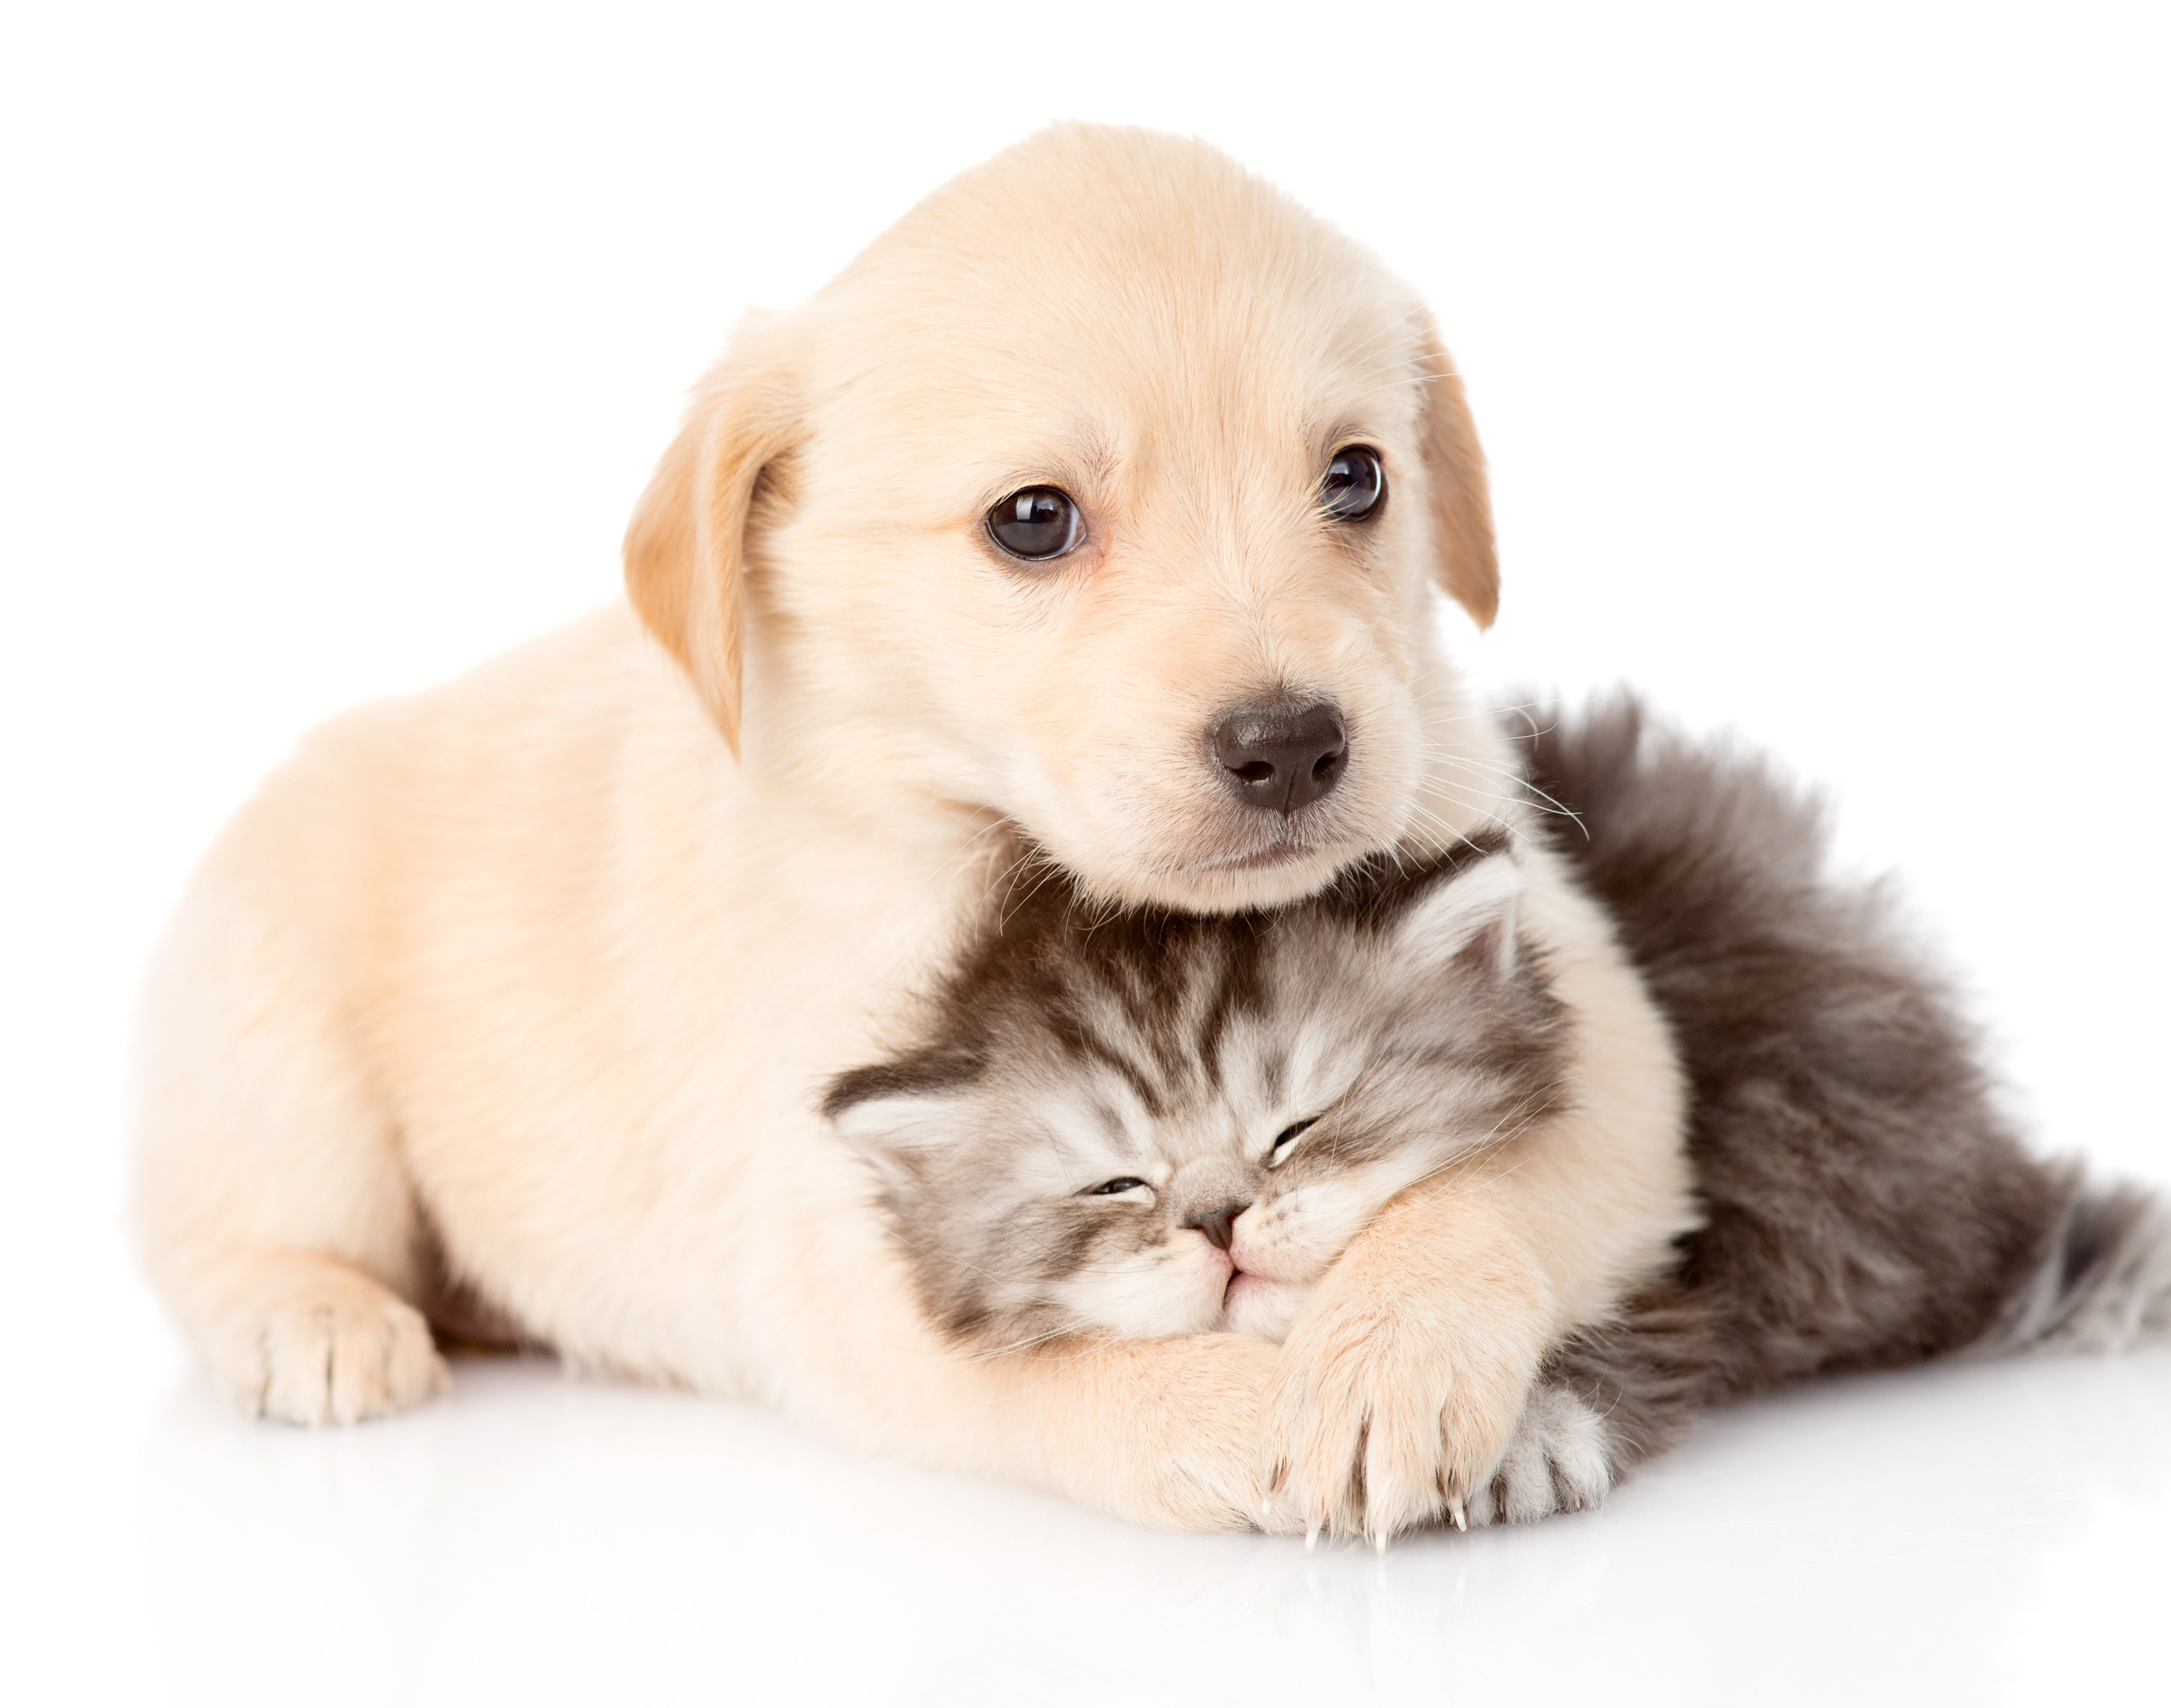 4k Cat And Dog Hd Wallpaper 4830x3800 Pets Kittens And Puppies Puppies